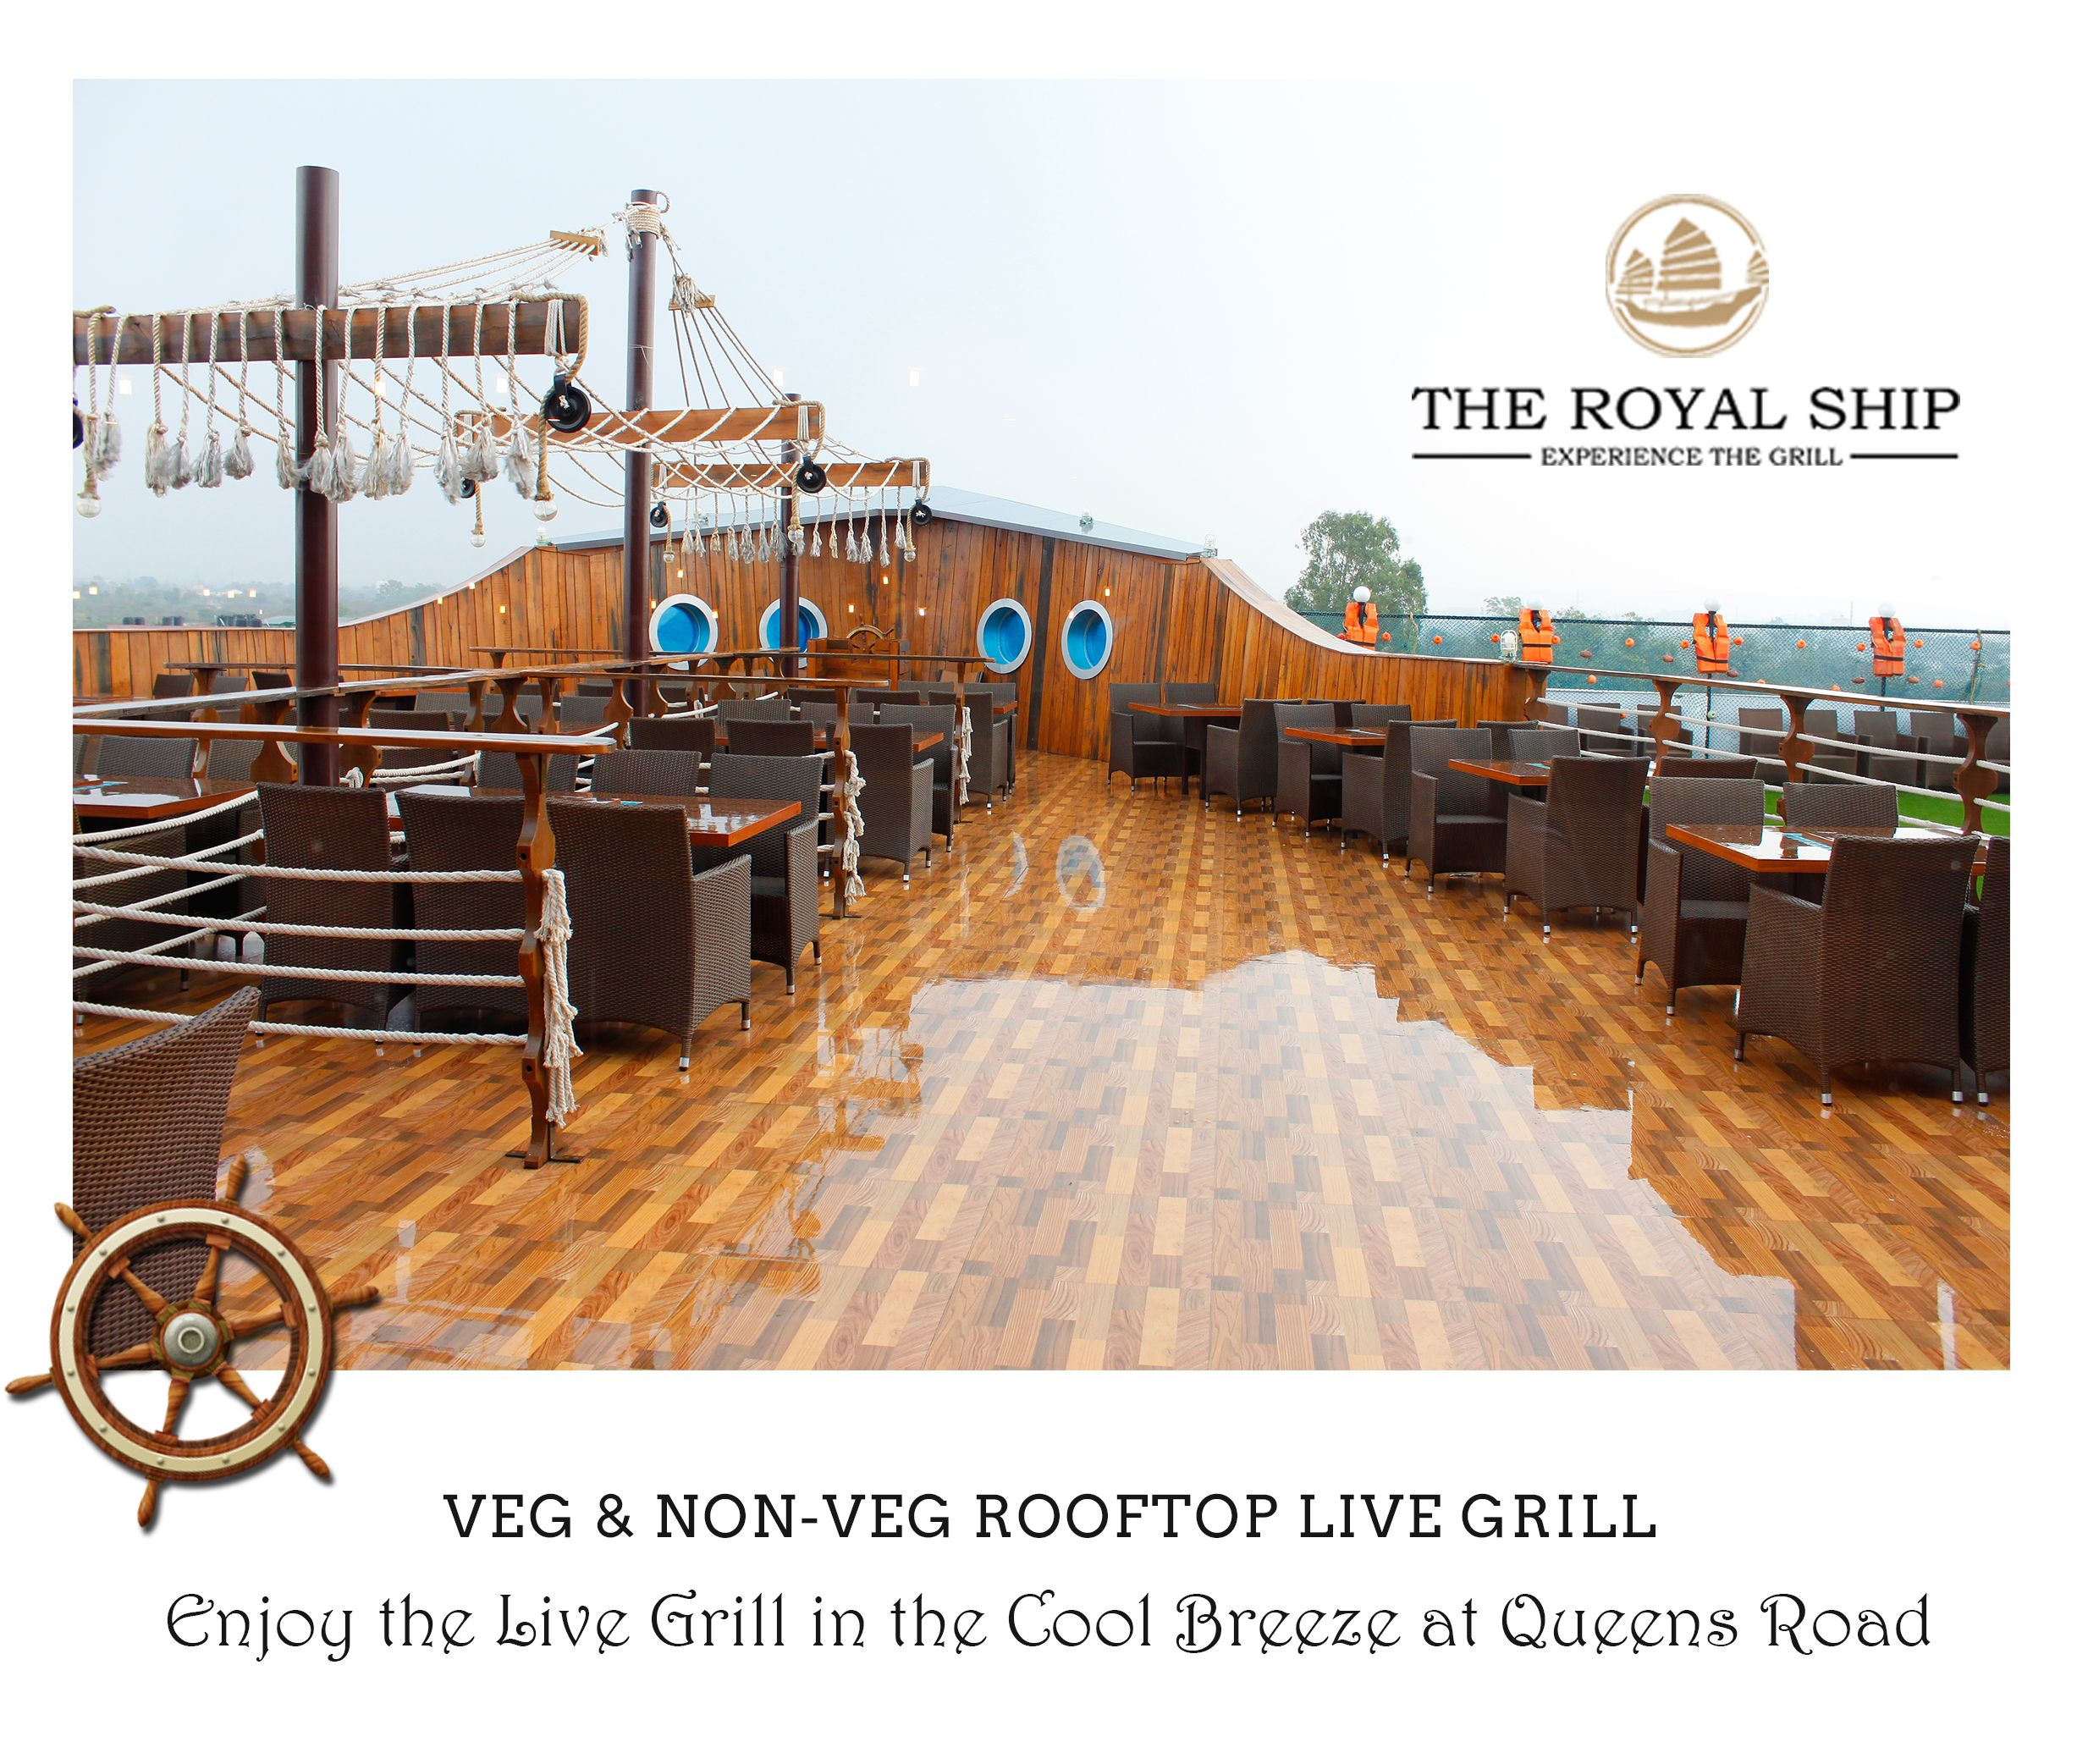 The Royal Ship Restaurant Is A Premier Fine Dining Restaurant With